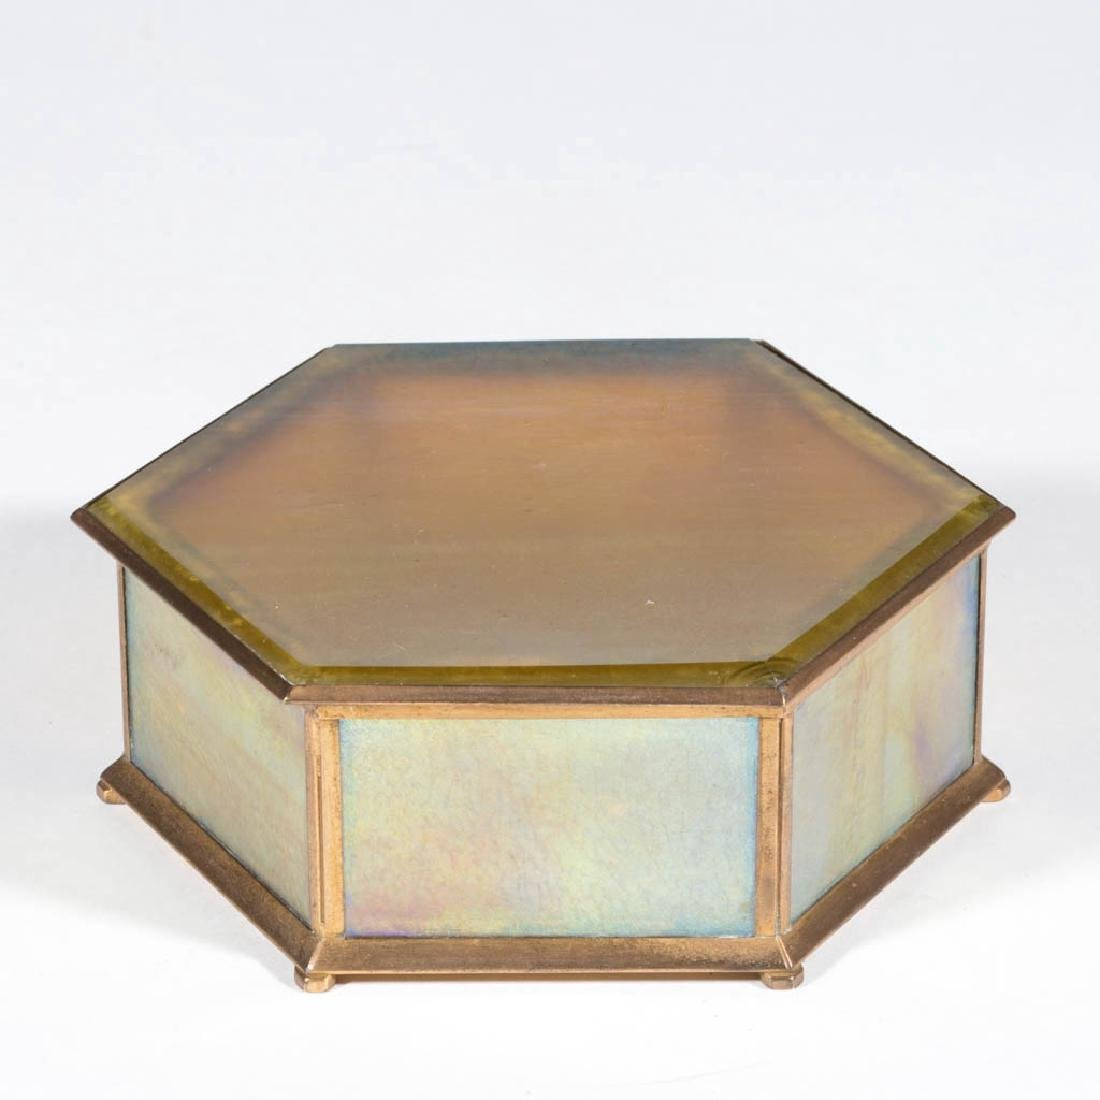 TIFFANY STUDIOS / FURNACES IRIDESCENT GLASS AND BRONZE